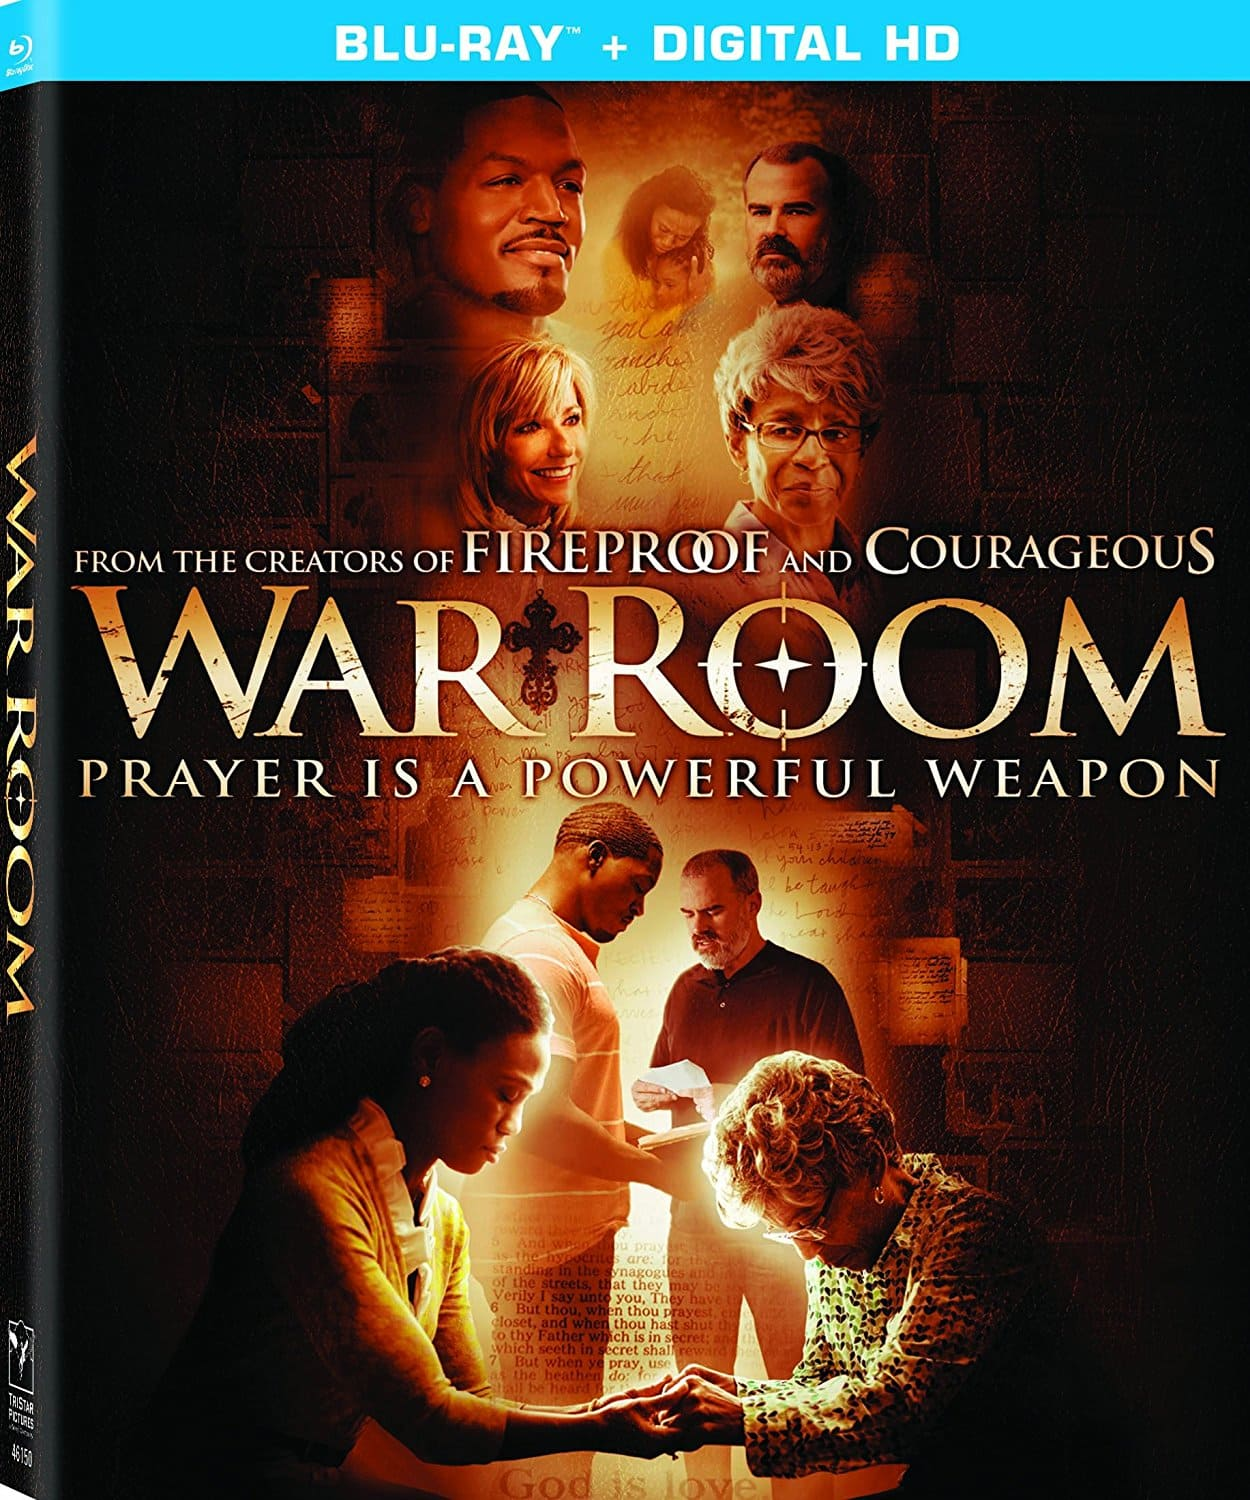 War Room (Blu-ray Disc) - Amazon.com - $6.99